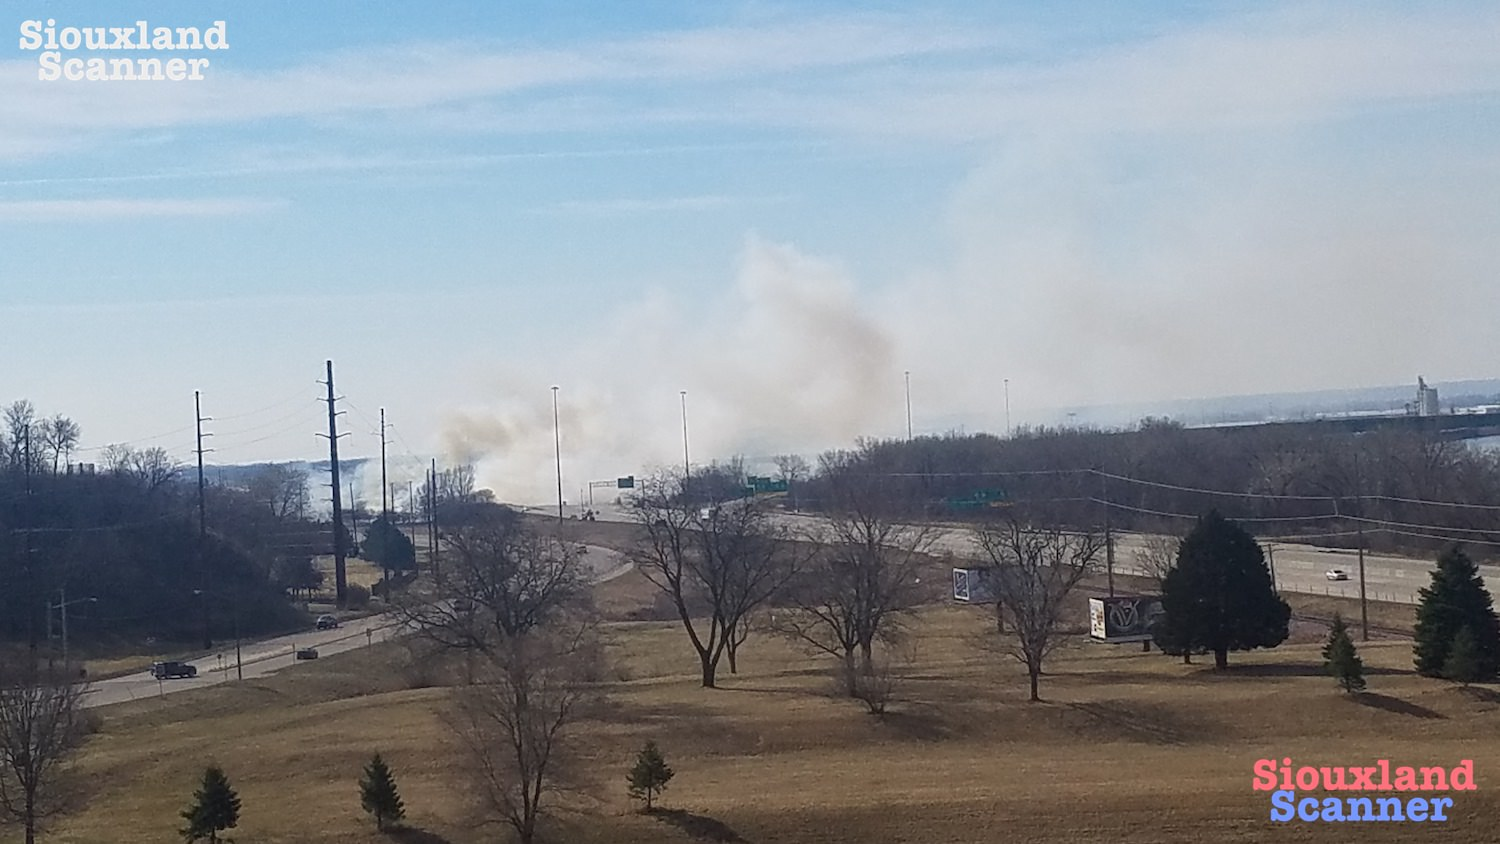 Passing train likely caused Multiple Grass Fires along Interstate 29